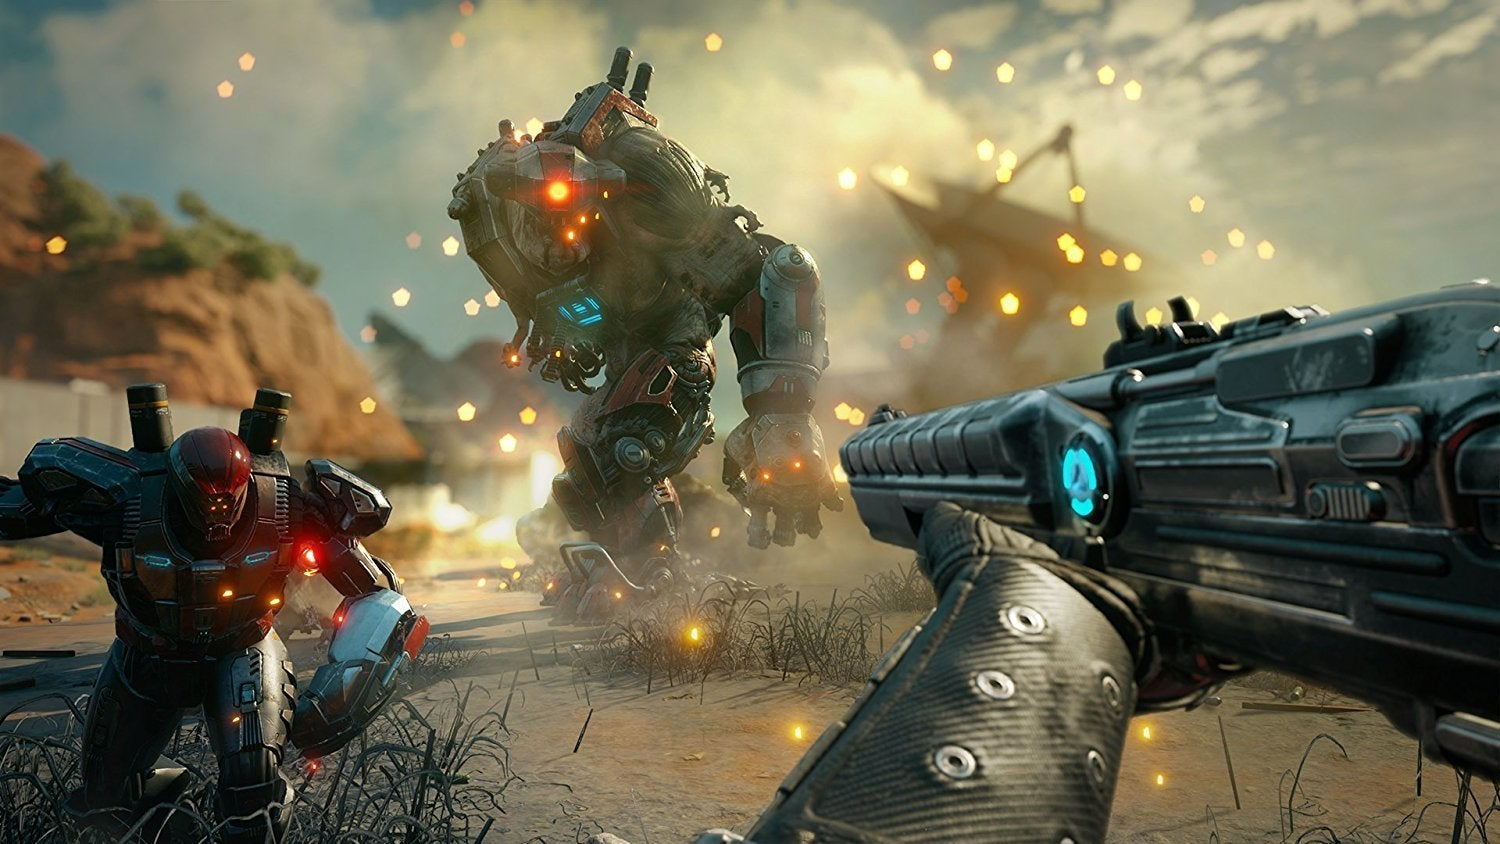 Hands-on: Rage 2's Doom-inspired action is a maelstrom of